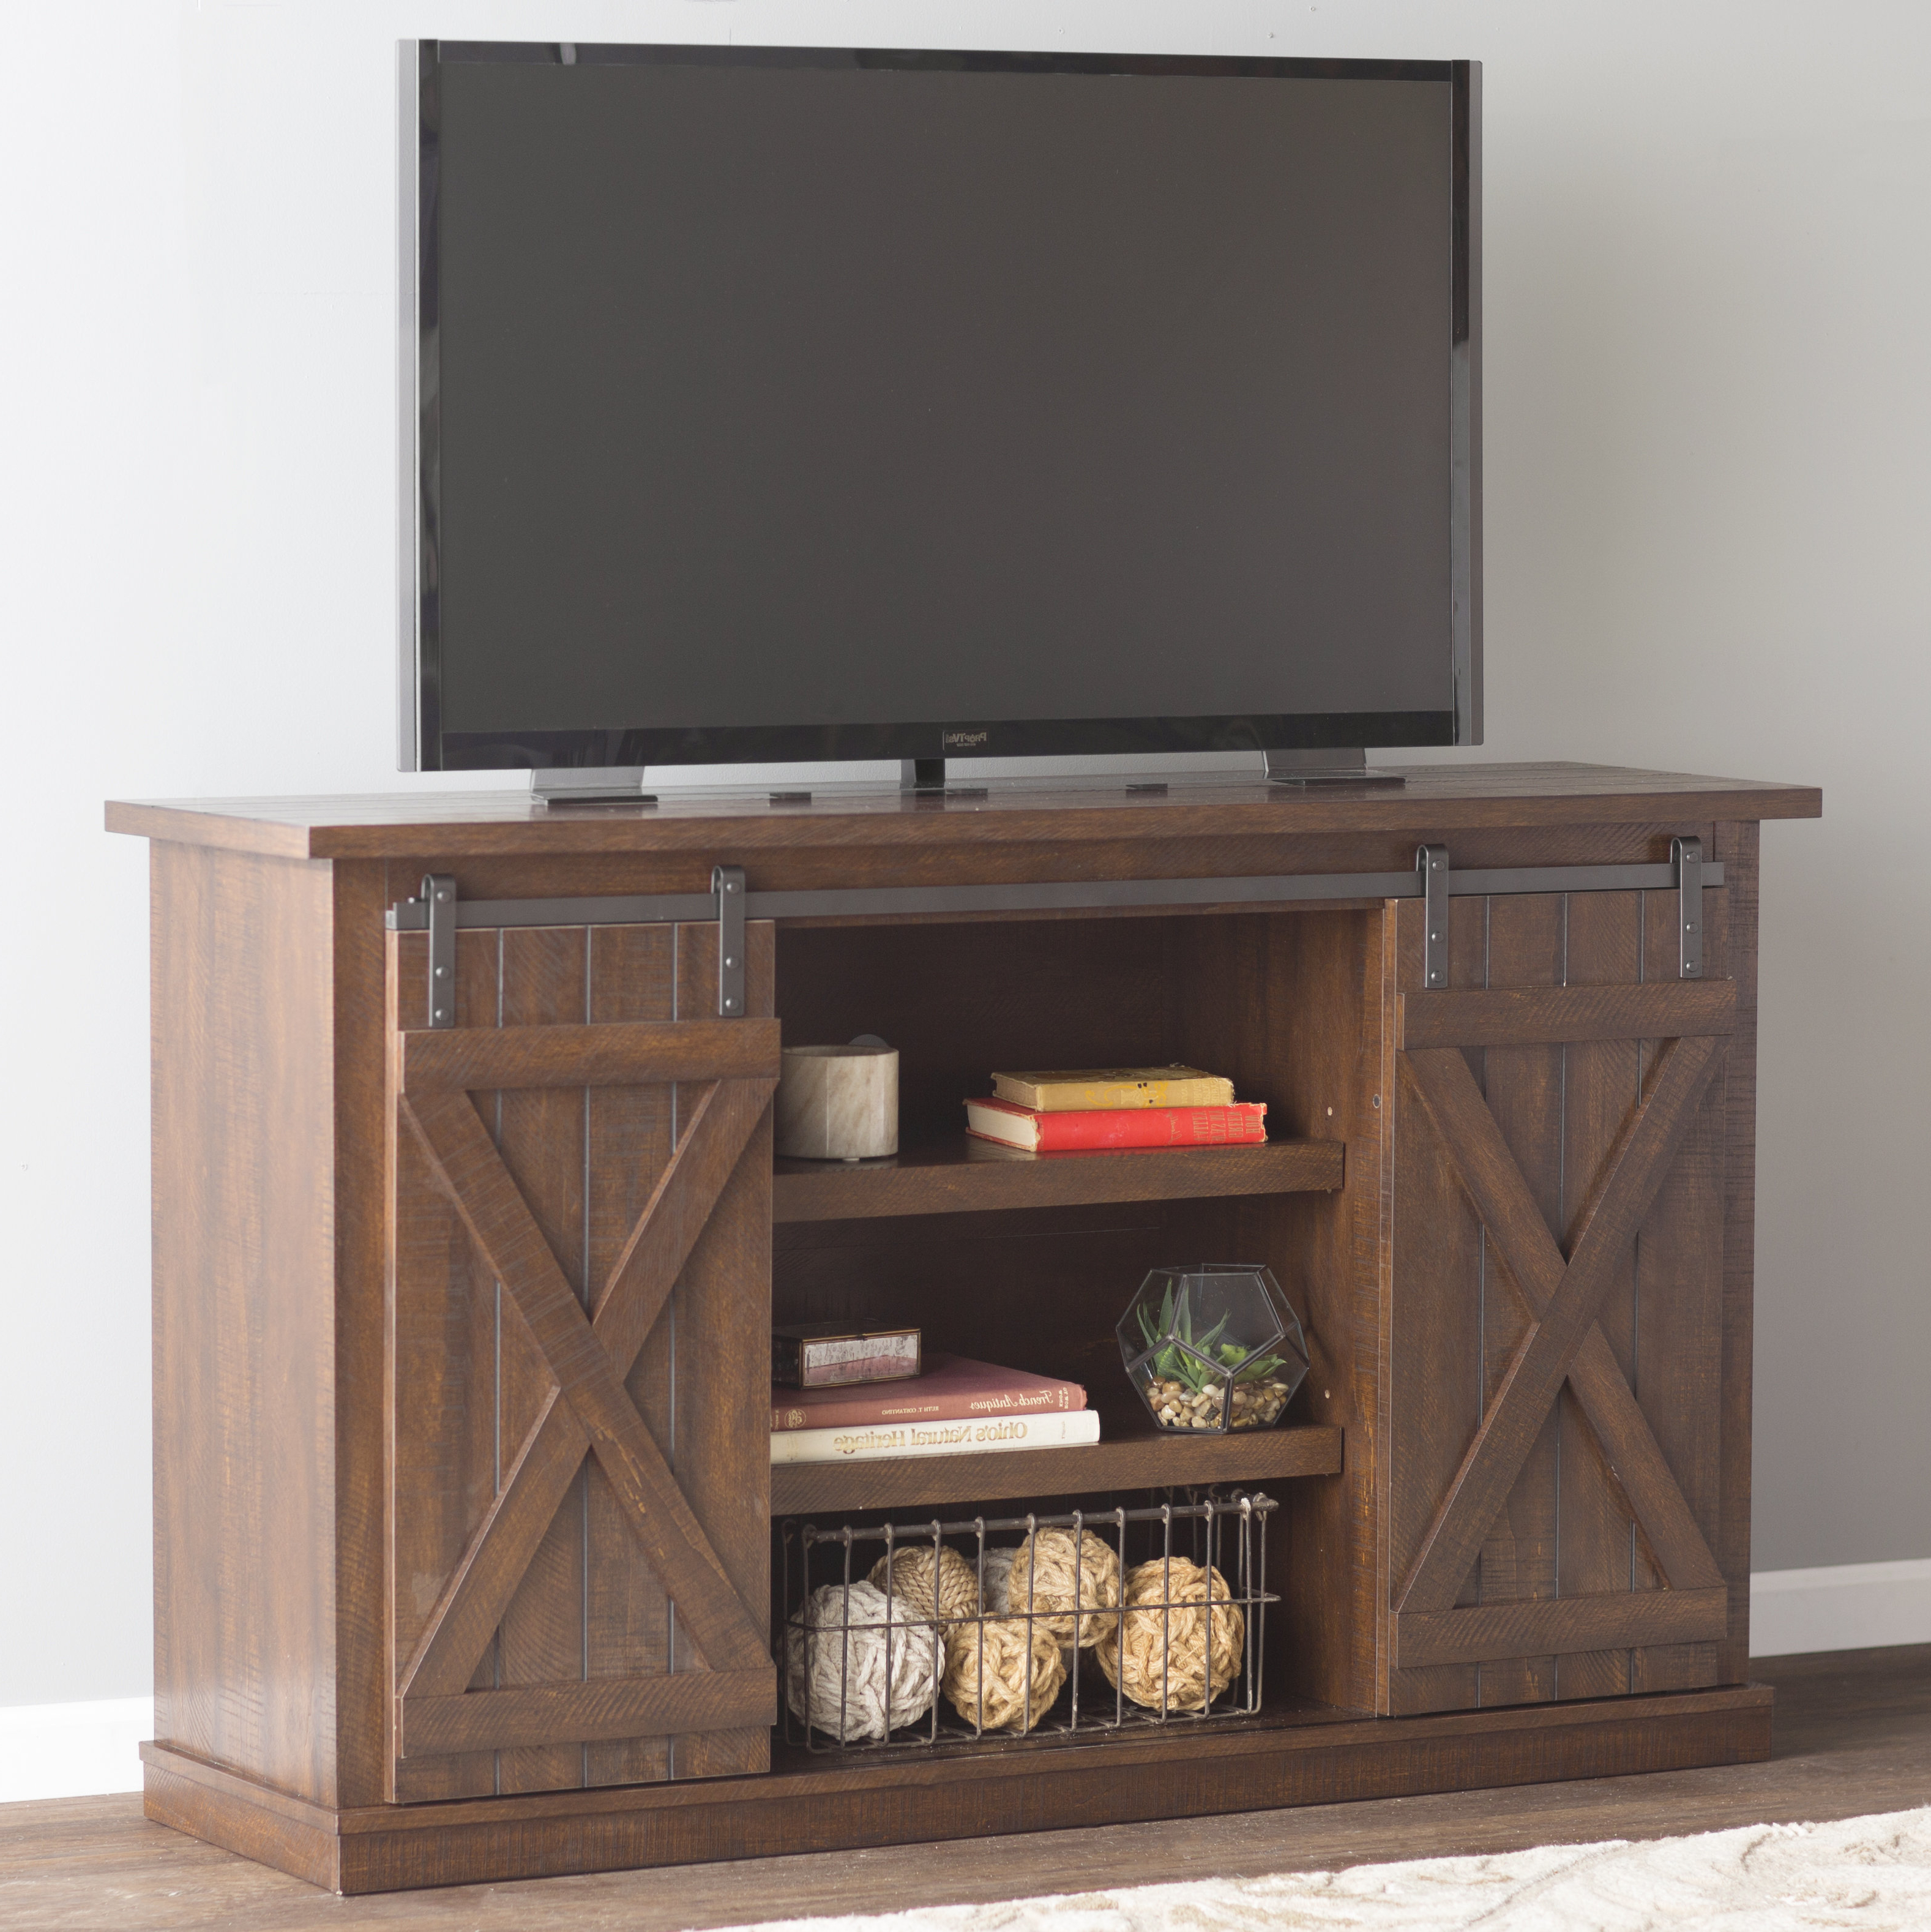 Tv Stands & Entertainment Centers You'll Love Intended For Most Popular Tv Stands Cabinets (View 6 of 20)